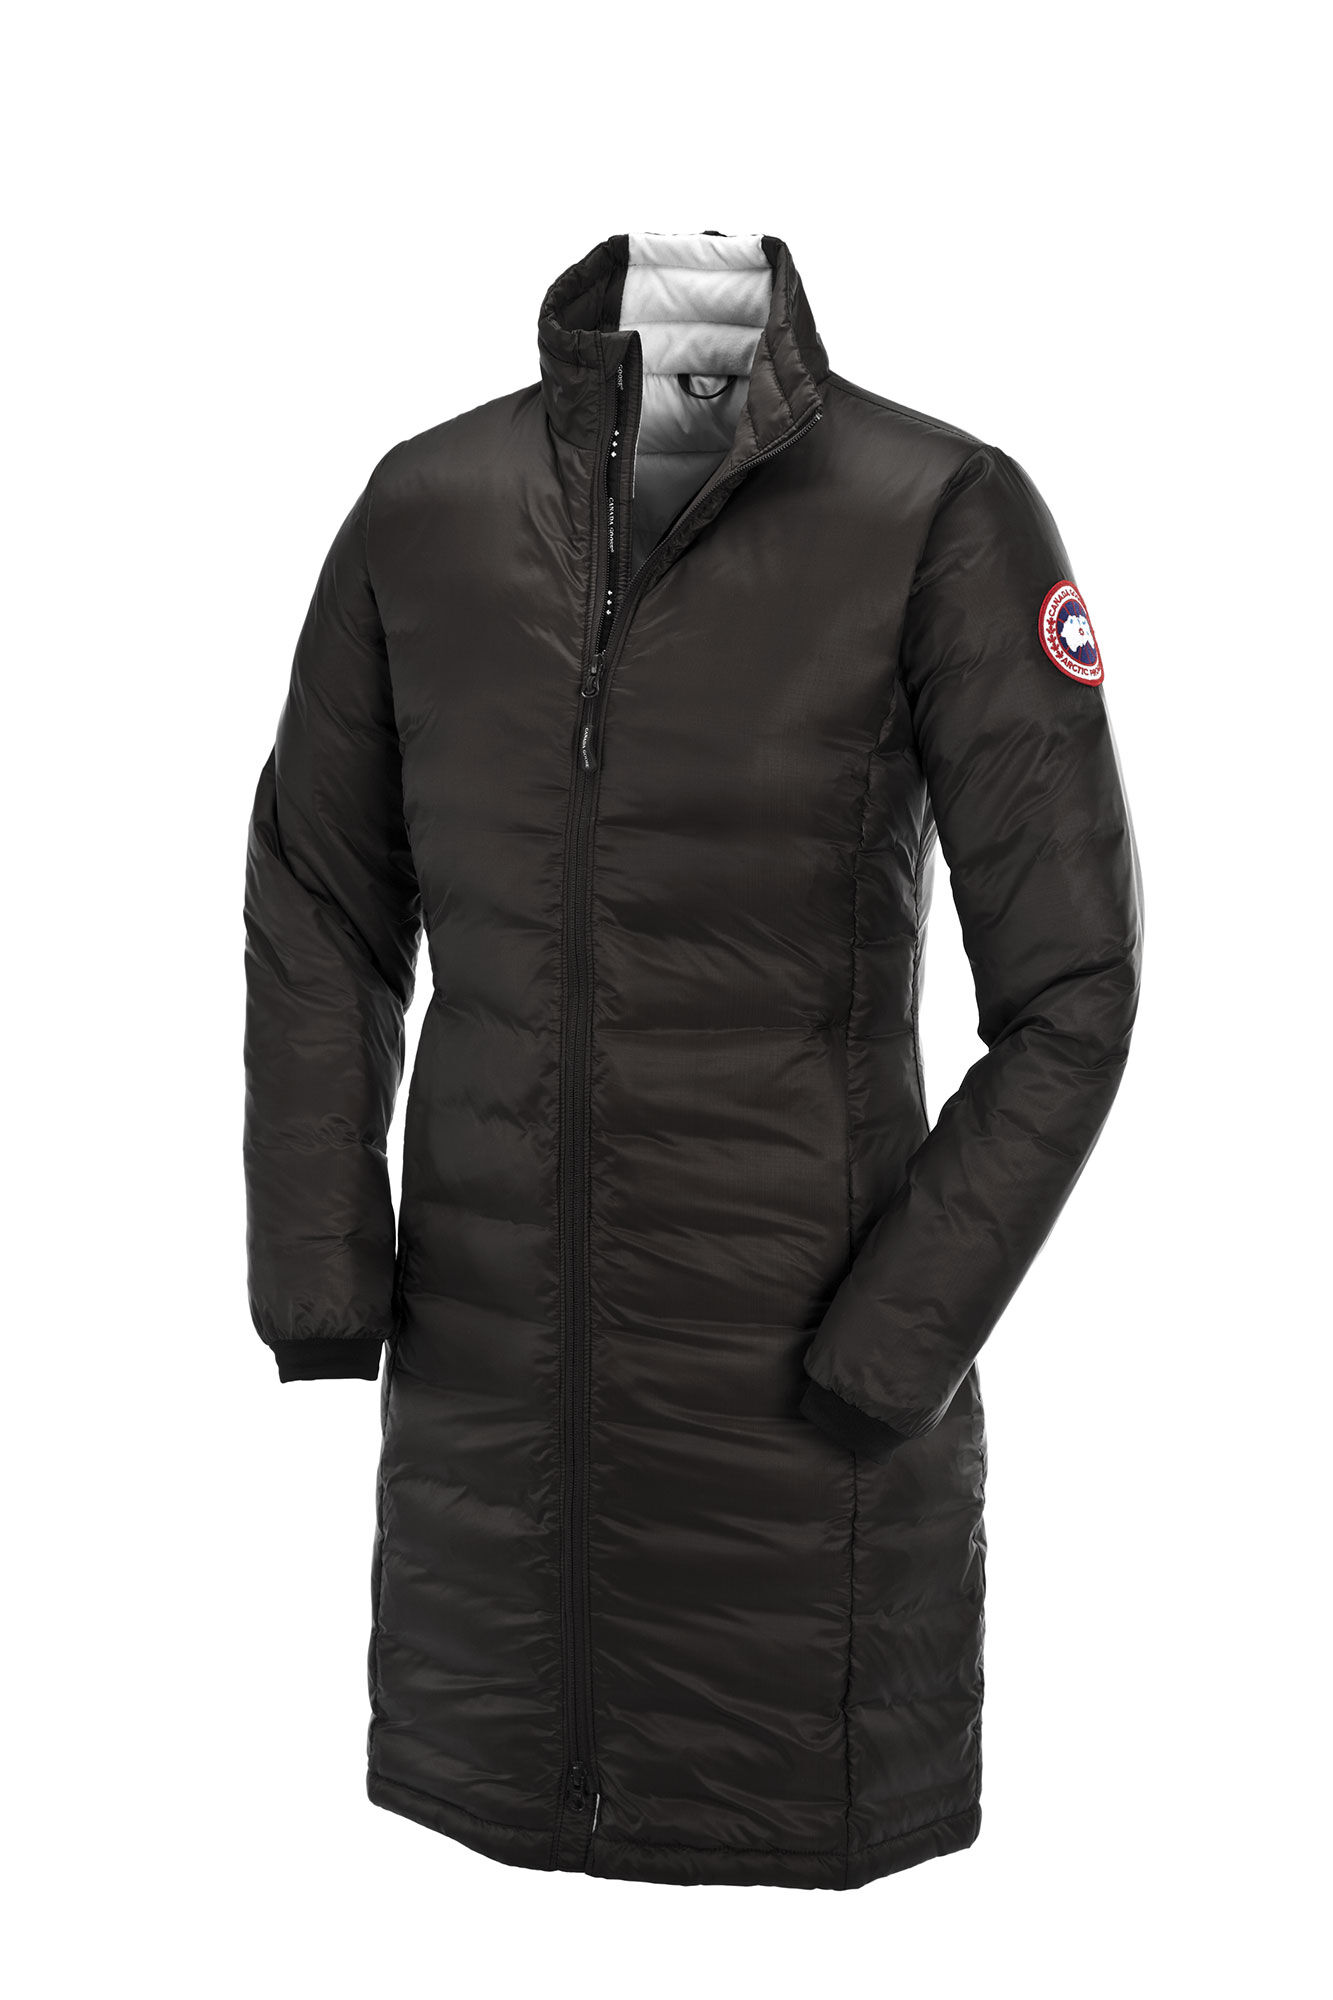 Canada Goose hats sale 2016 - Women's Lightweight Down Coat Vest Skirt | Canada Goose?